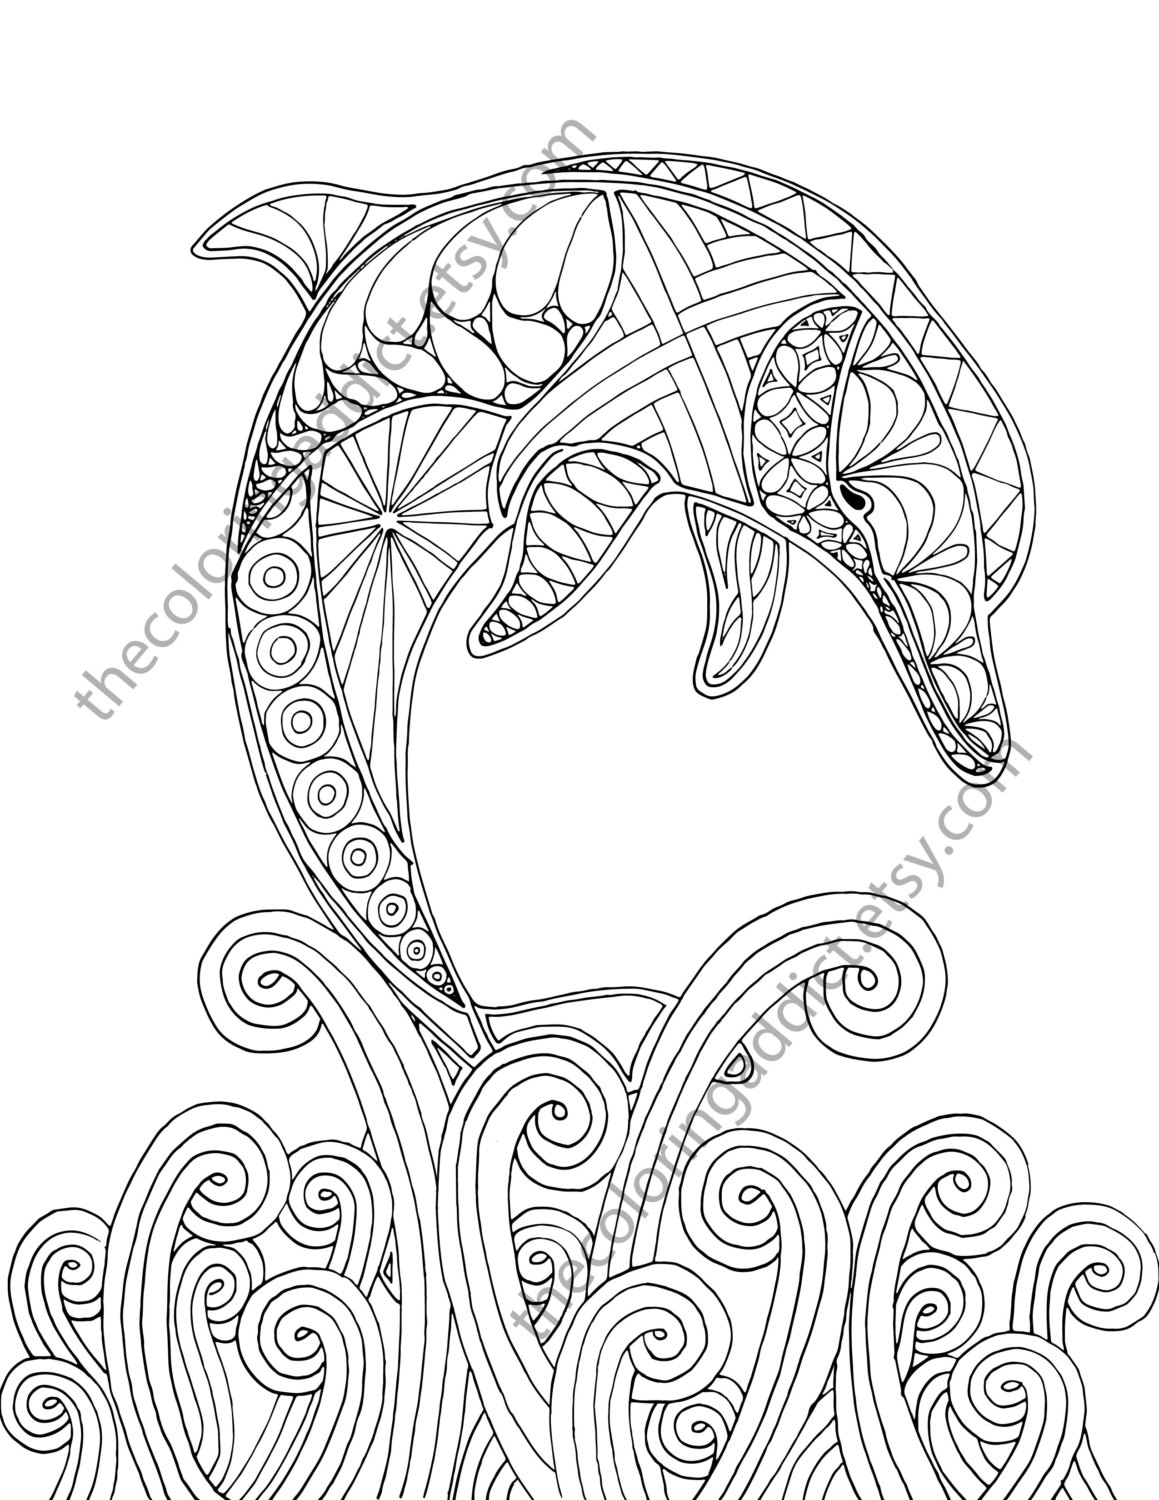 dolphins to color and print dolphin coloring page 02 tim39s printables and to color dolphins print